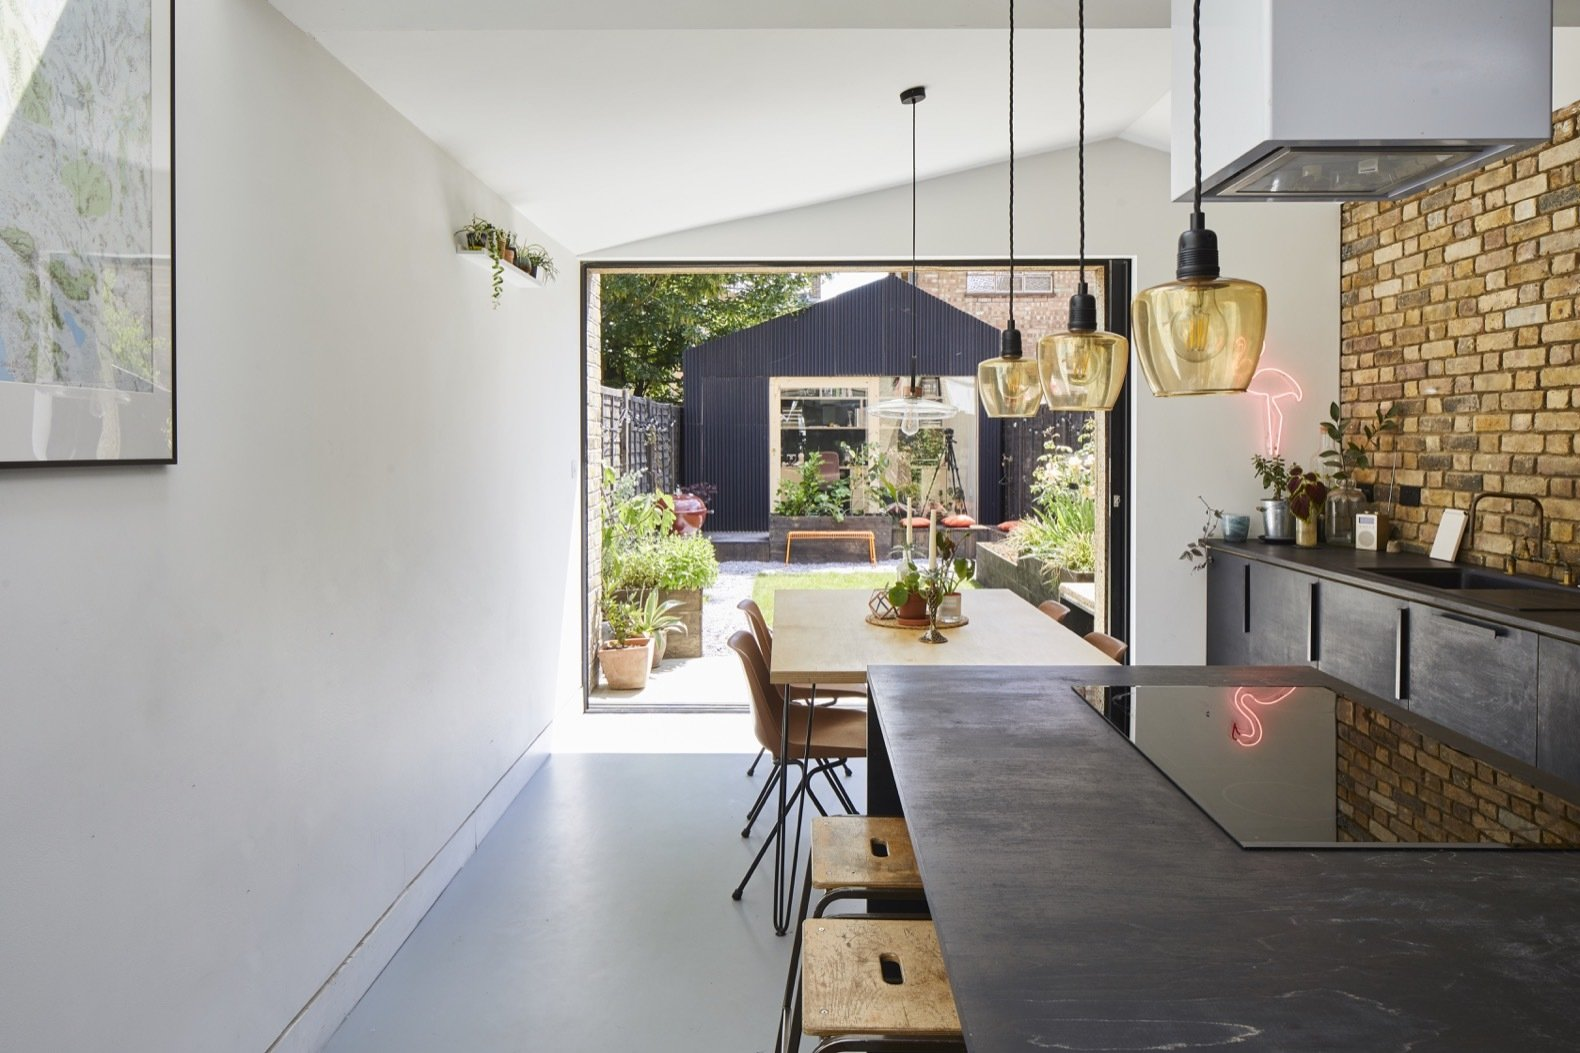 A London Couple Design and Build the Home of Their Dreams for Less Than $110K